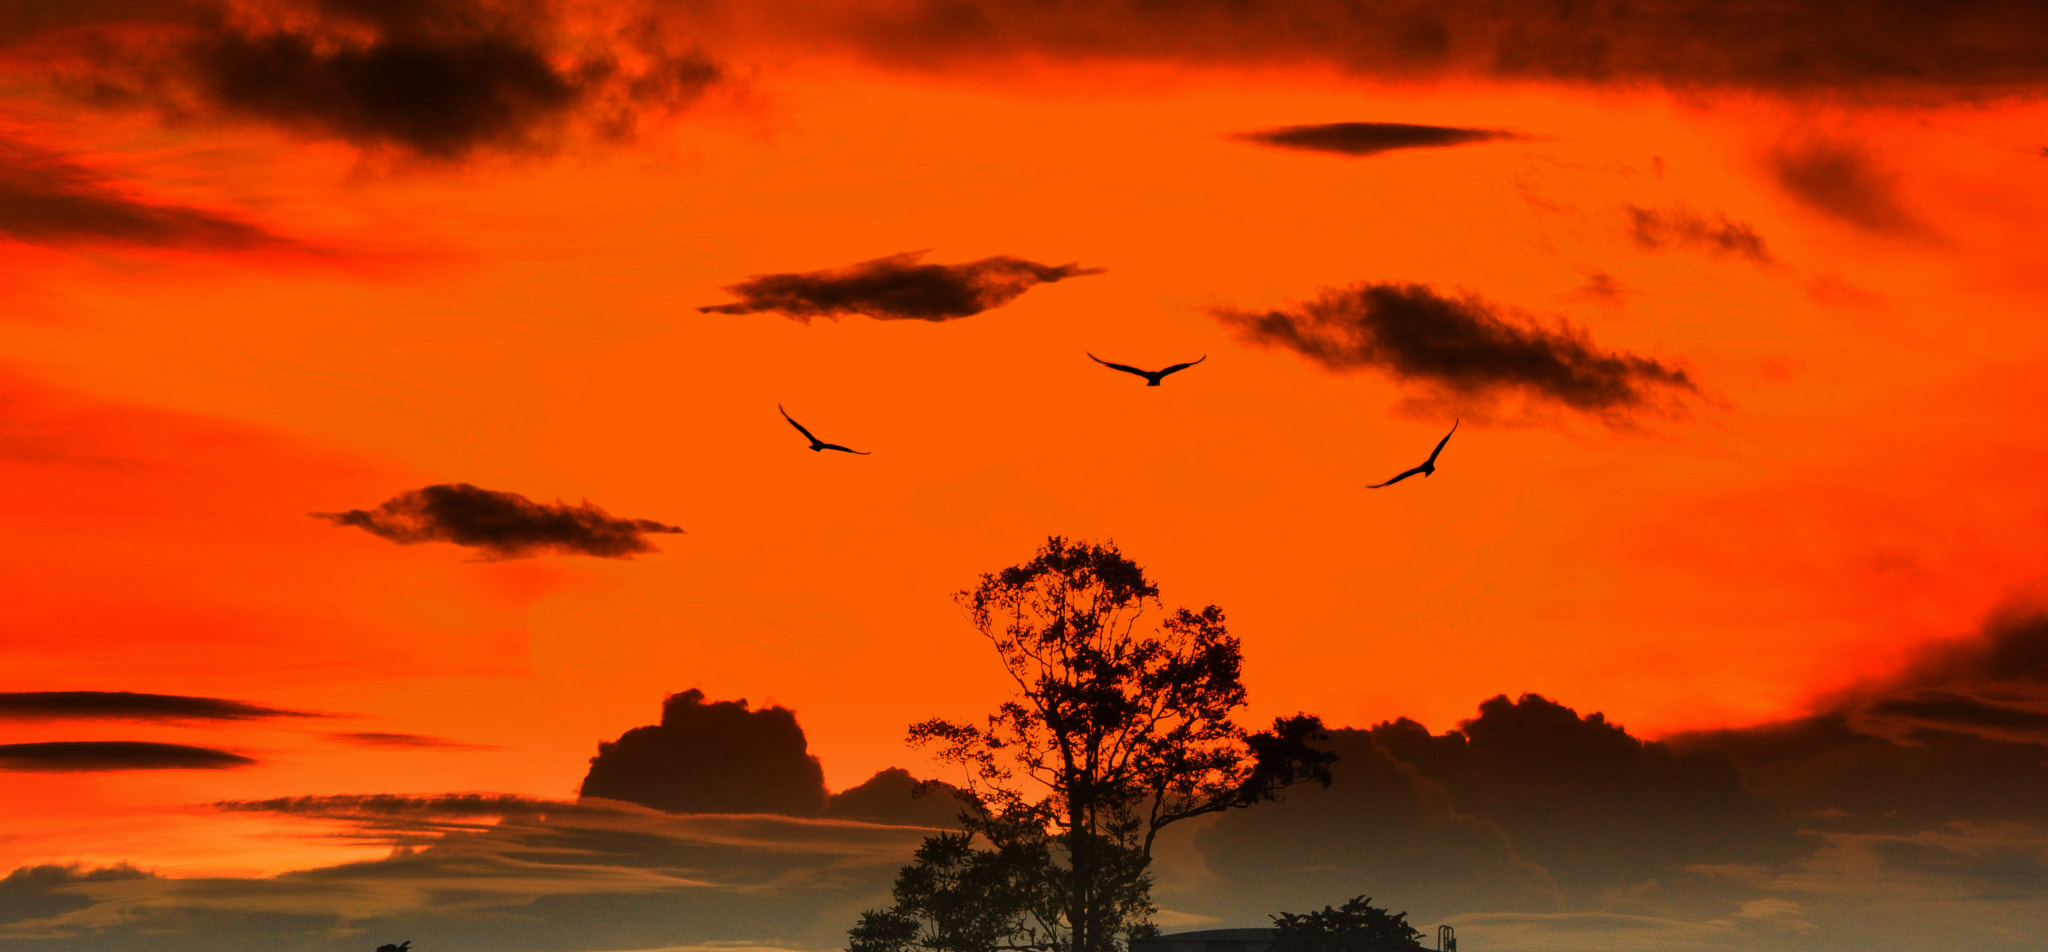 Photograph silhouette by nieya ain on 500px